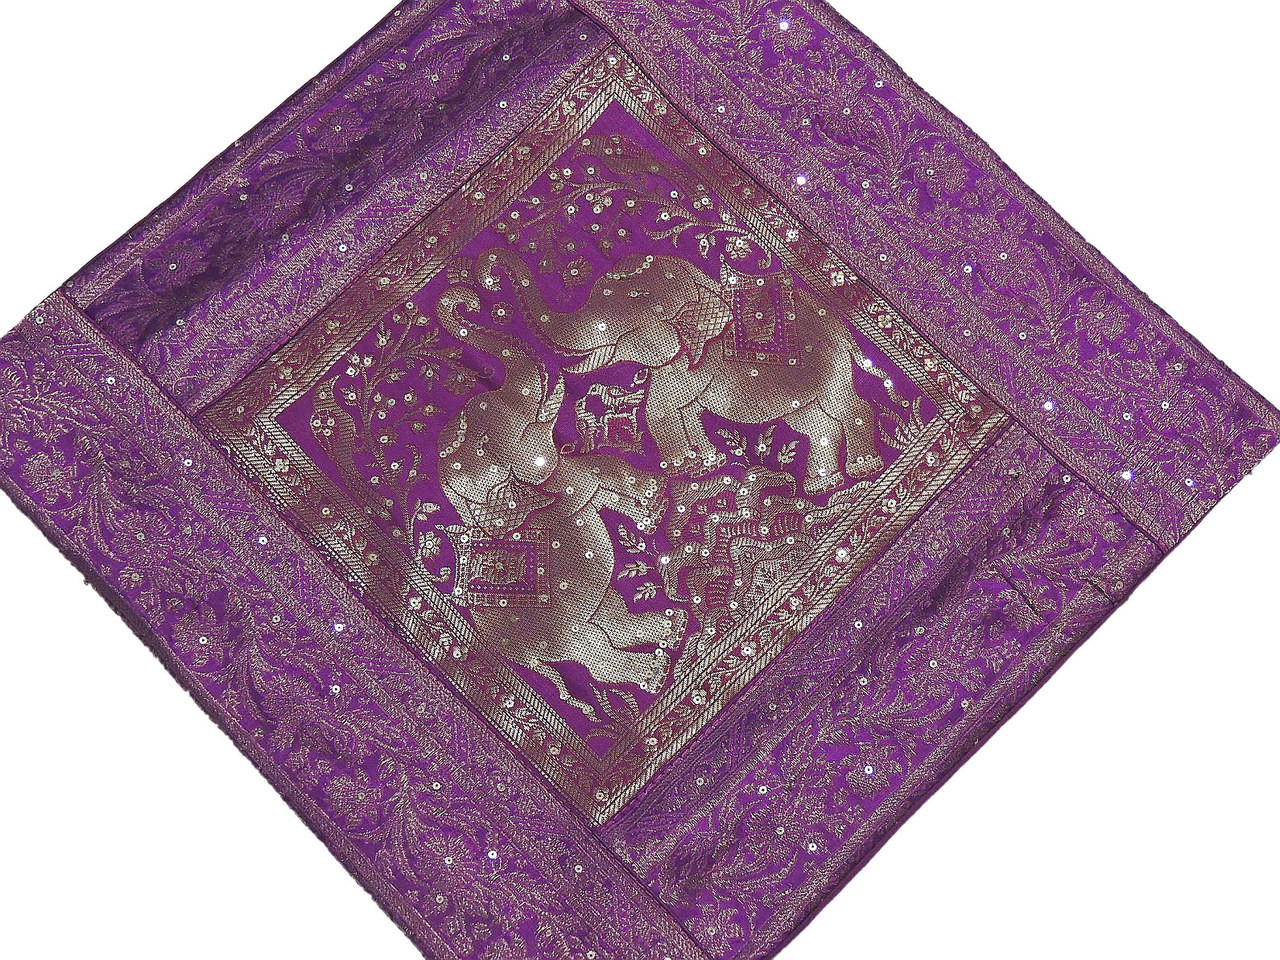 Sequin Elephant Throw Pillow : Decorative Throw Pillow Cover - Purple Elephant Zari Sari Sequin Cushion 16